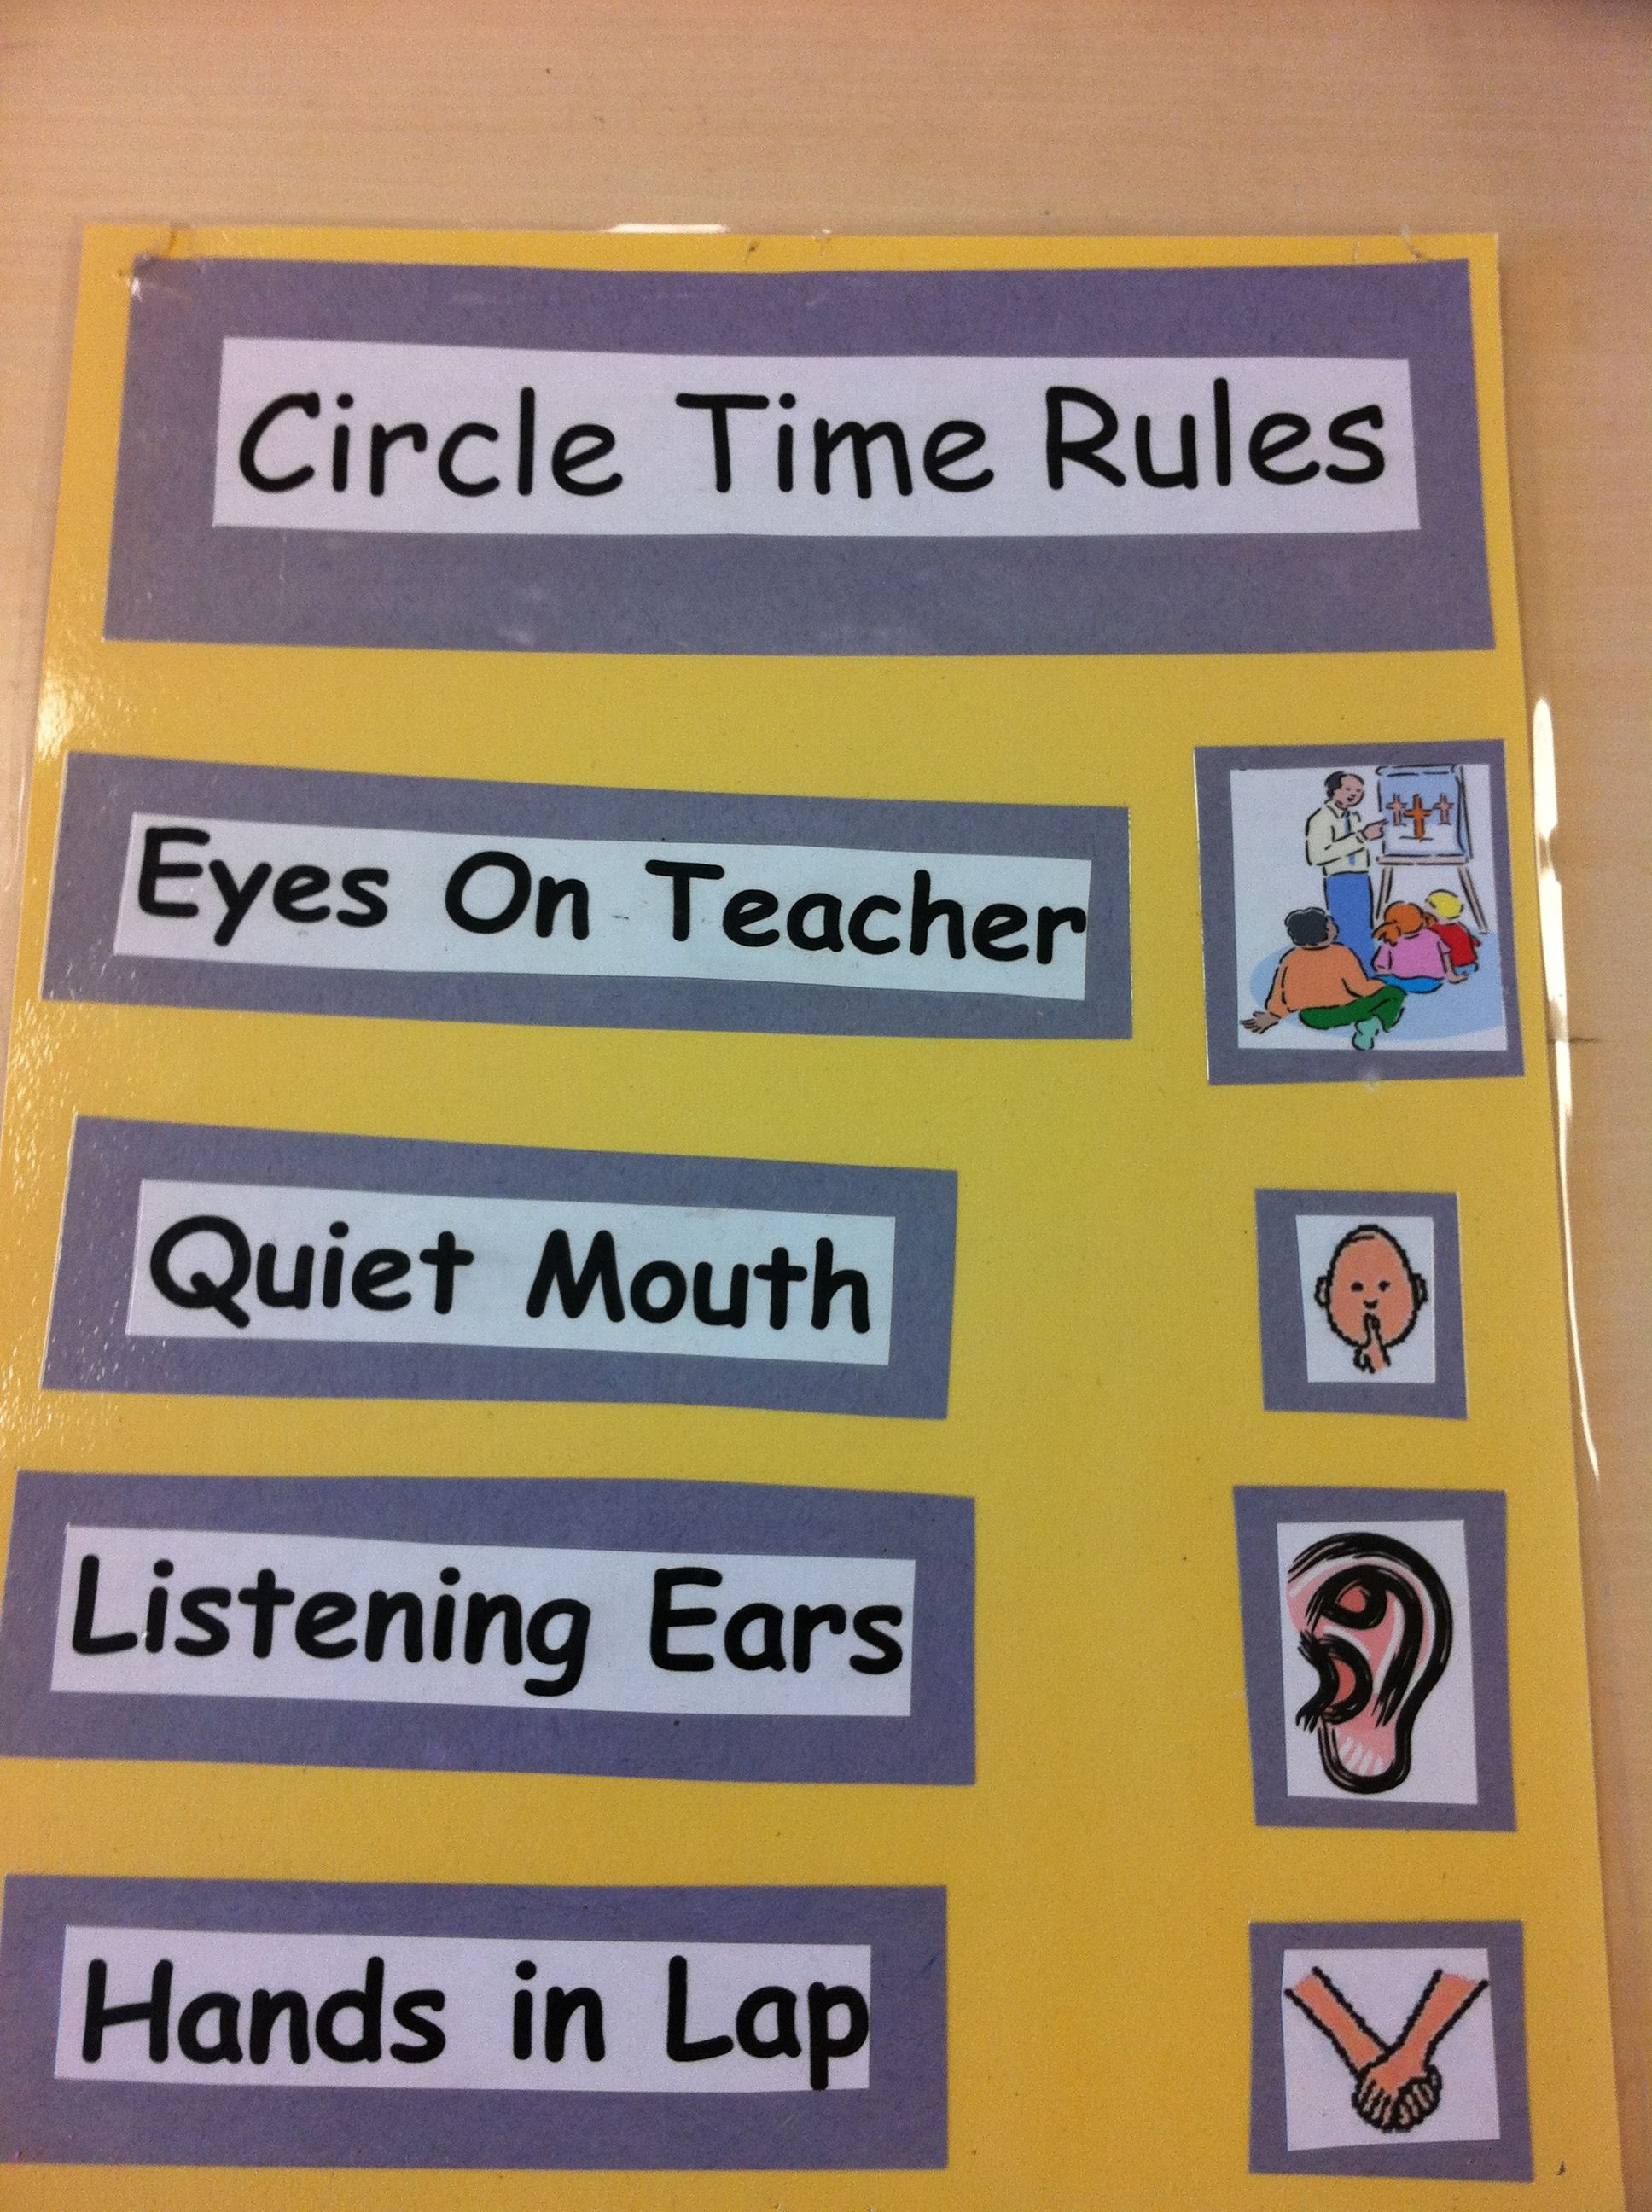 Circle Time Rules Amy Calabrese